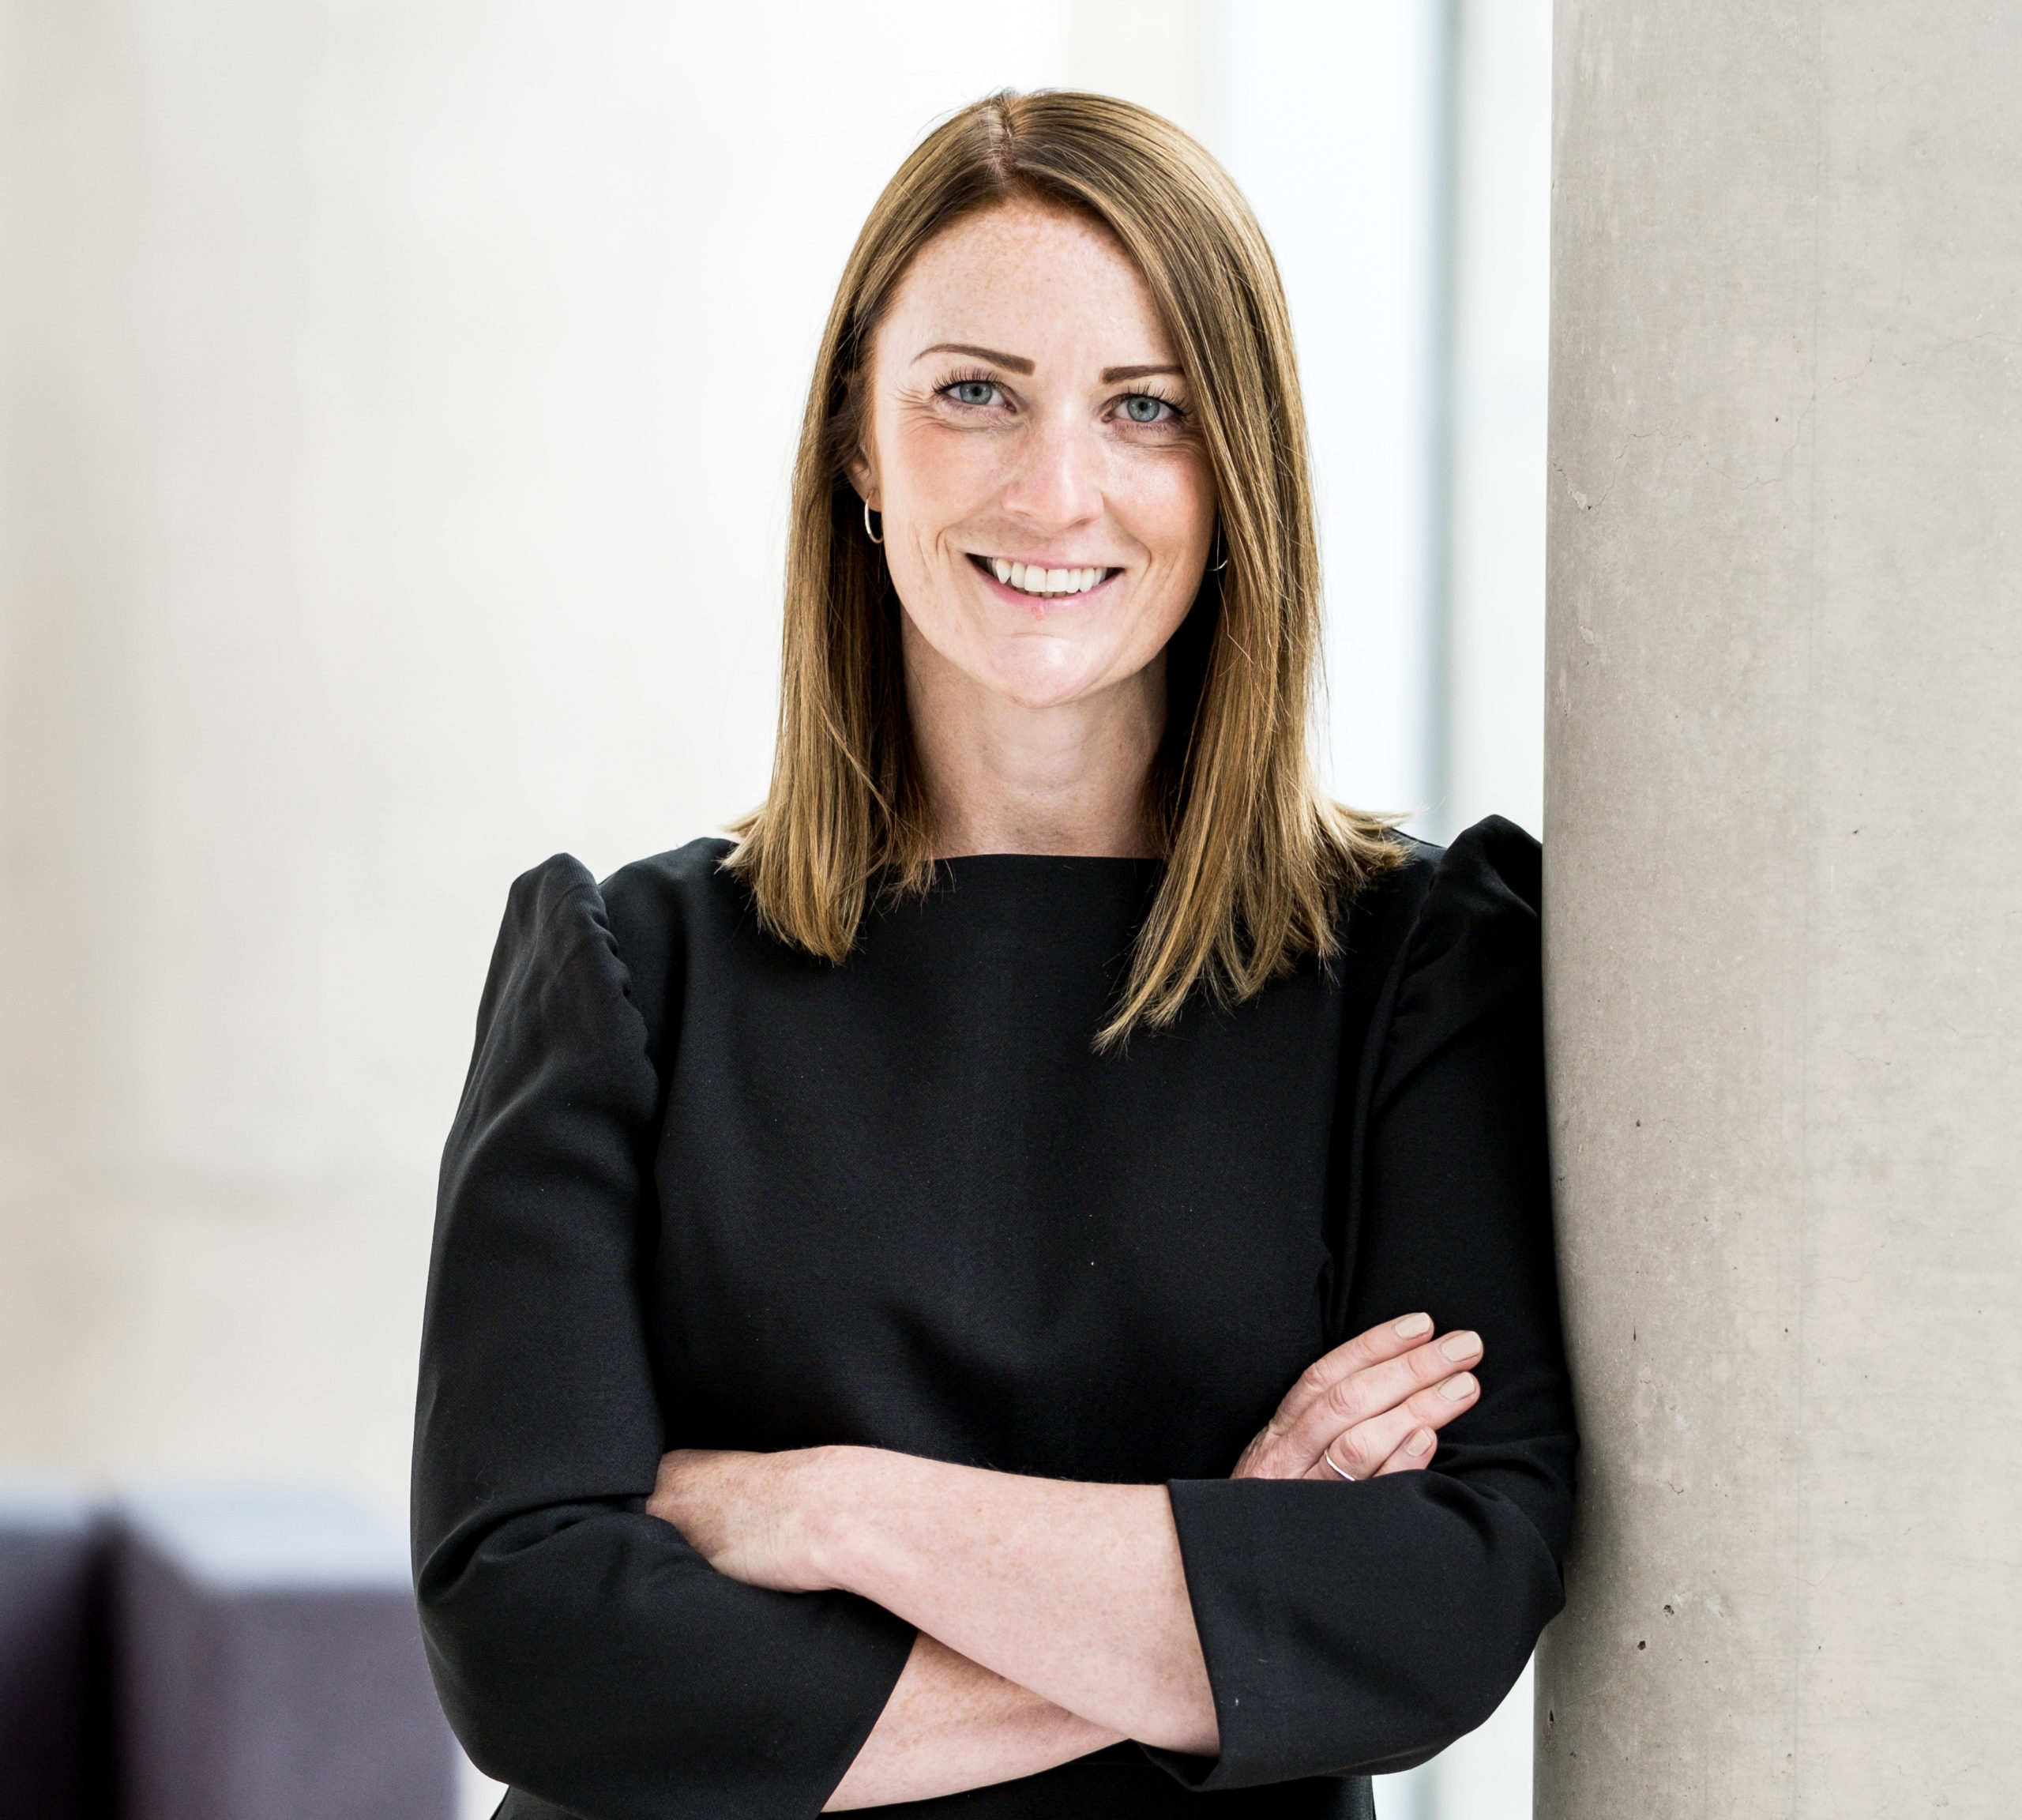 Claire Knowles, Employment Partner at Acuity Law